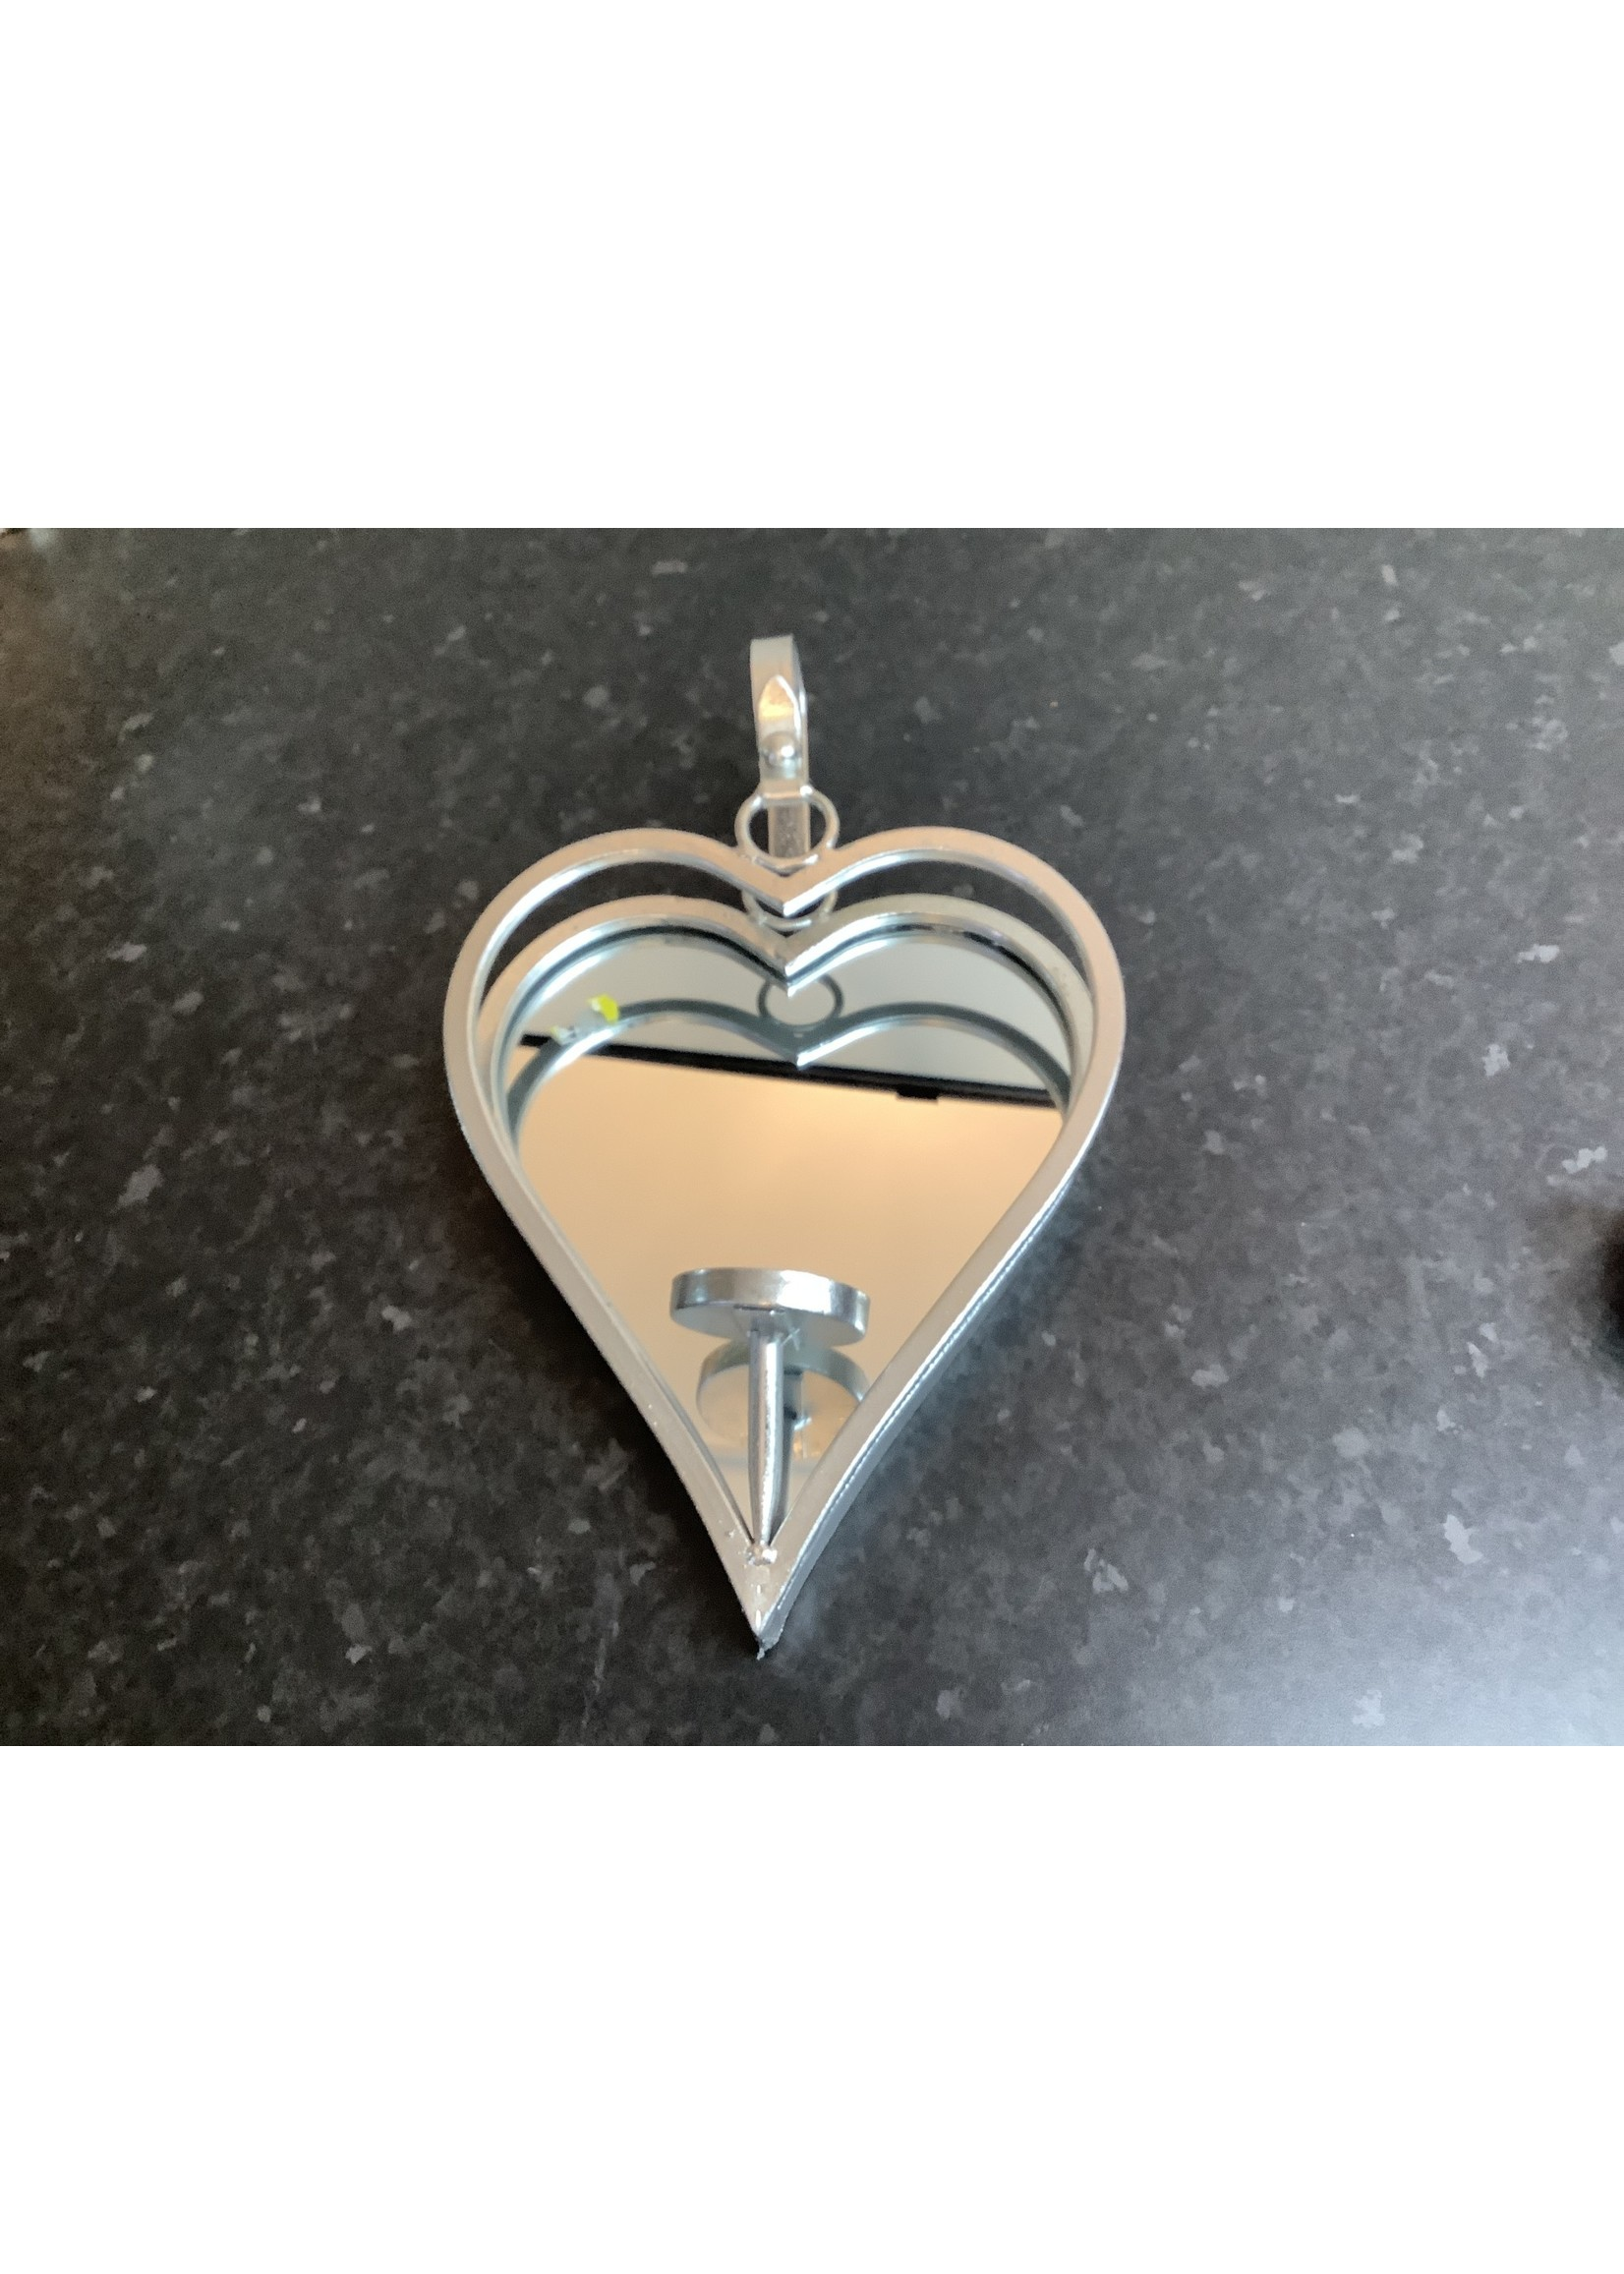 Mirrored heart wall candle holder